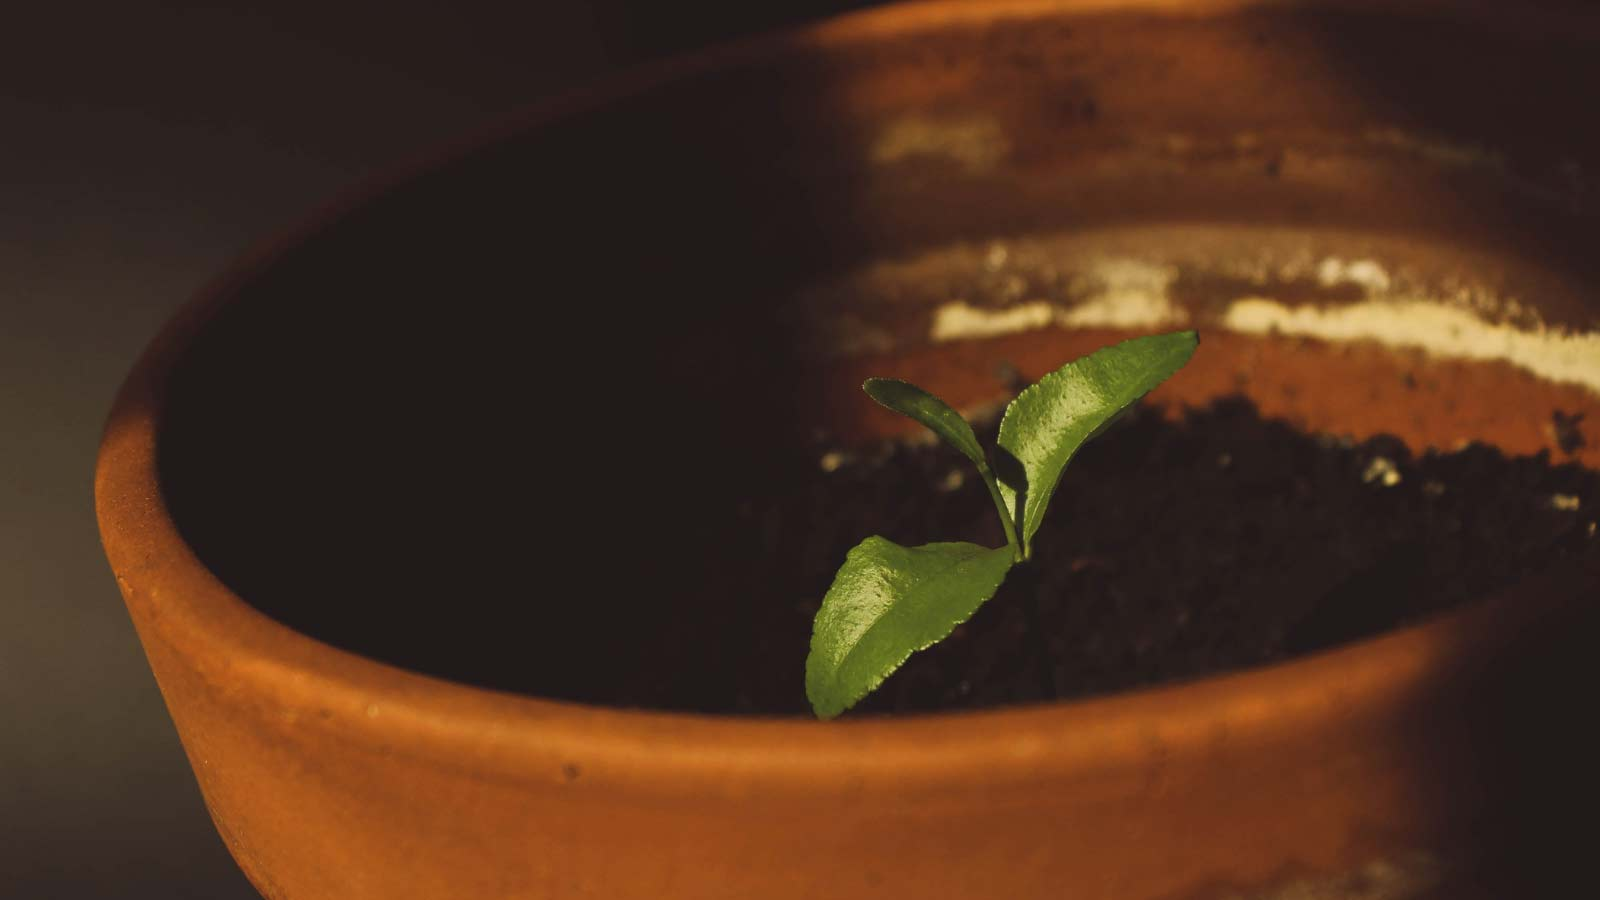 Three green leaves sprout from a pot